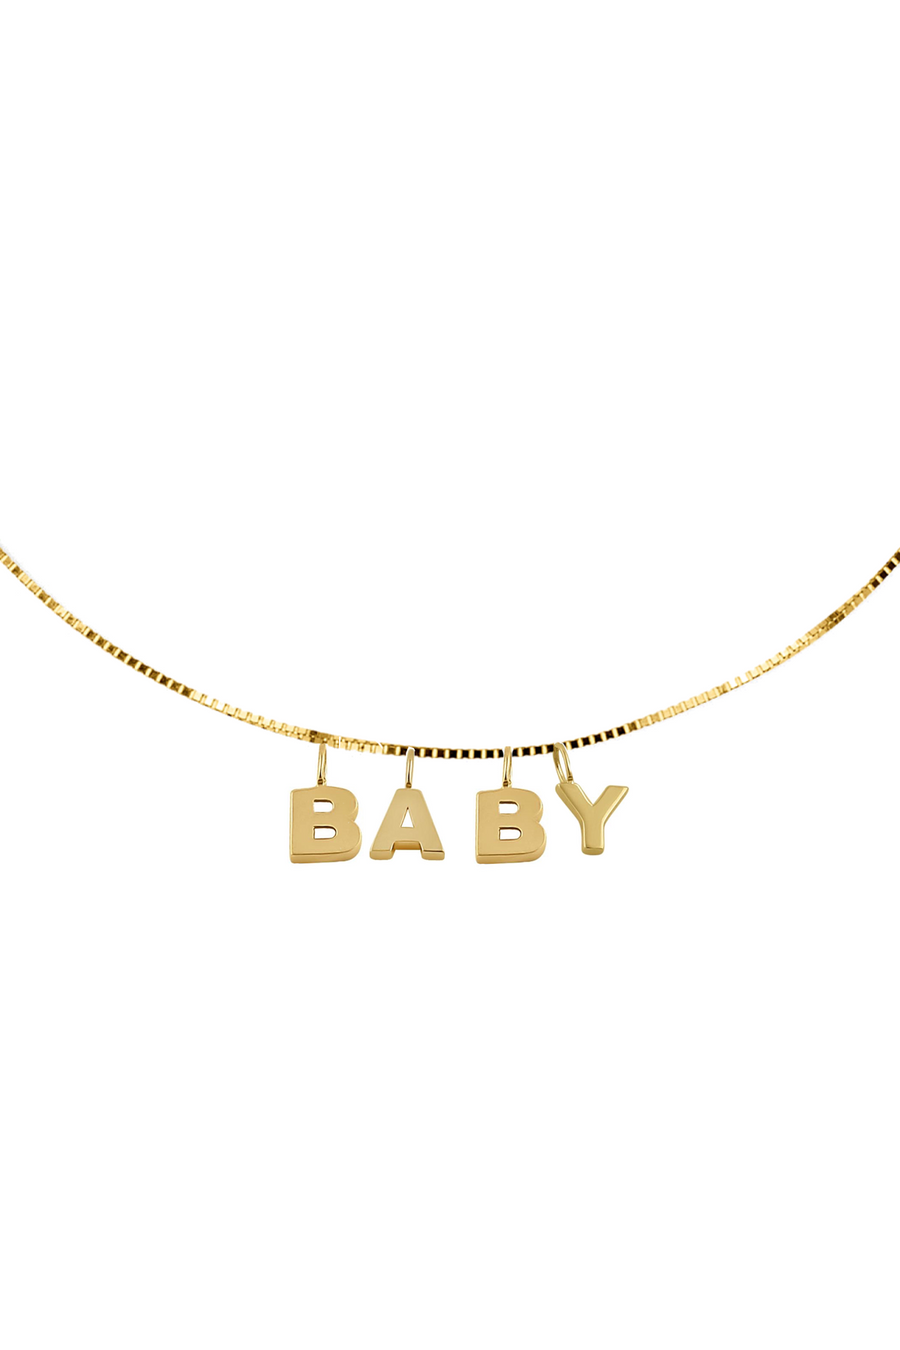 Baby Word Necklace